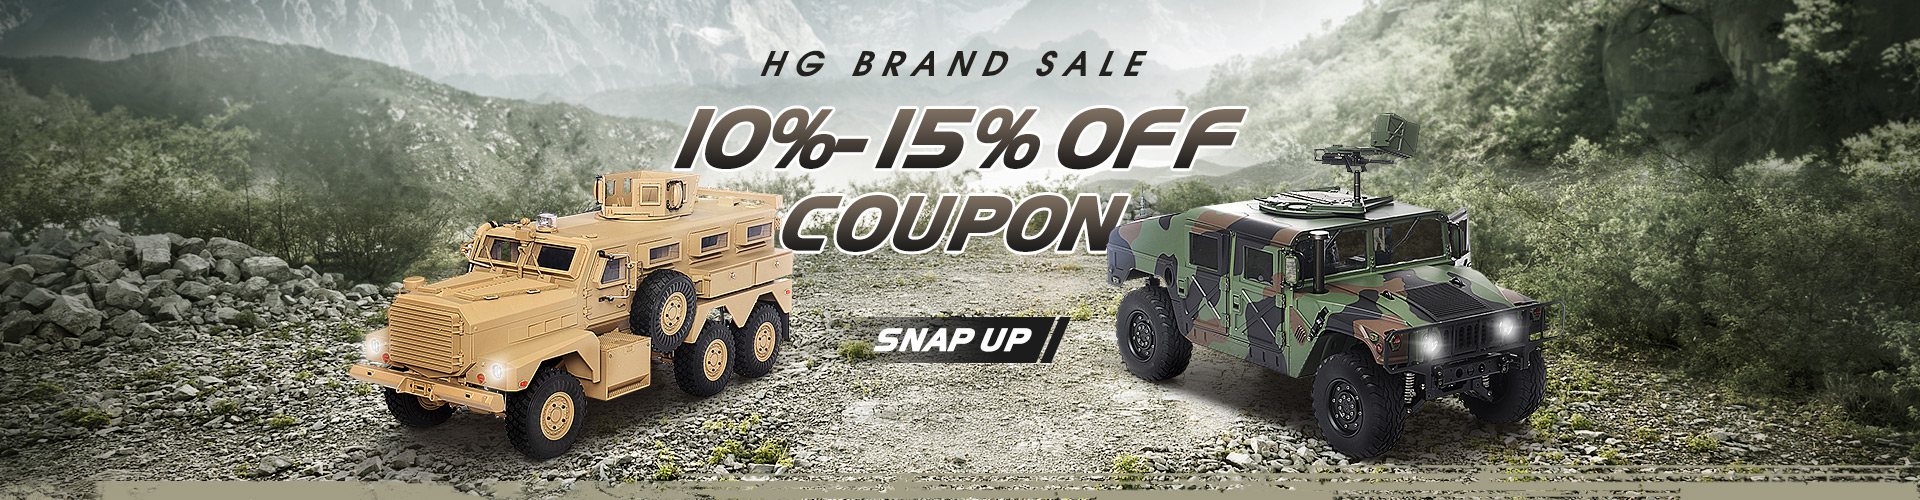 HG BRAND SALE 10%-15% OFF COUPON SNAP UP